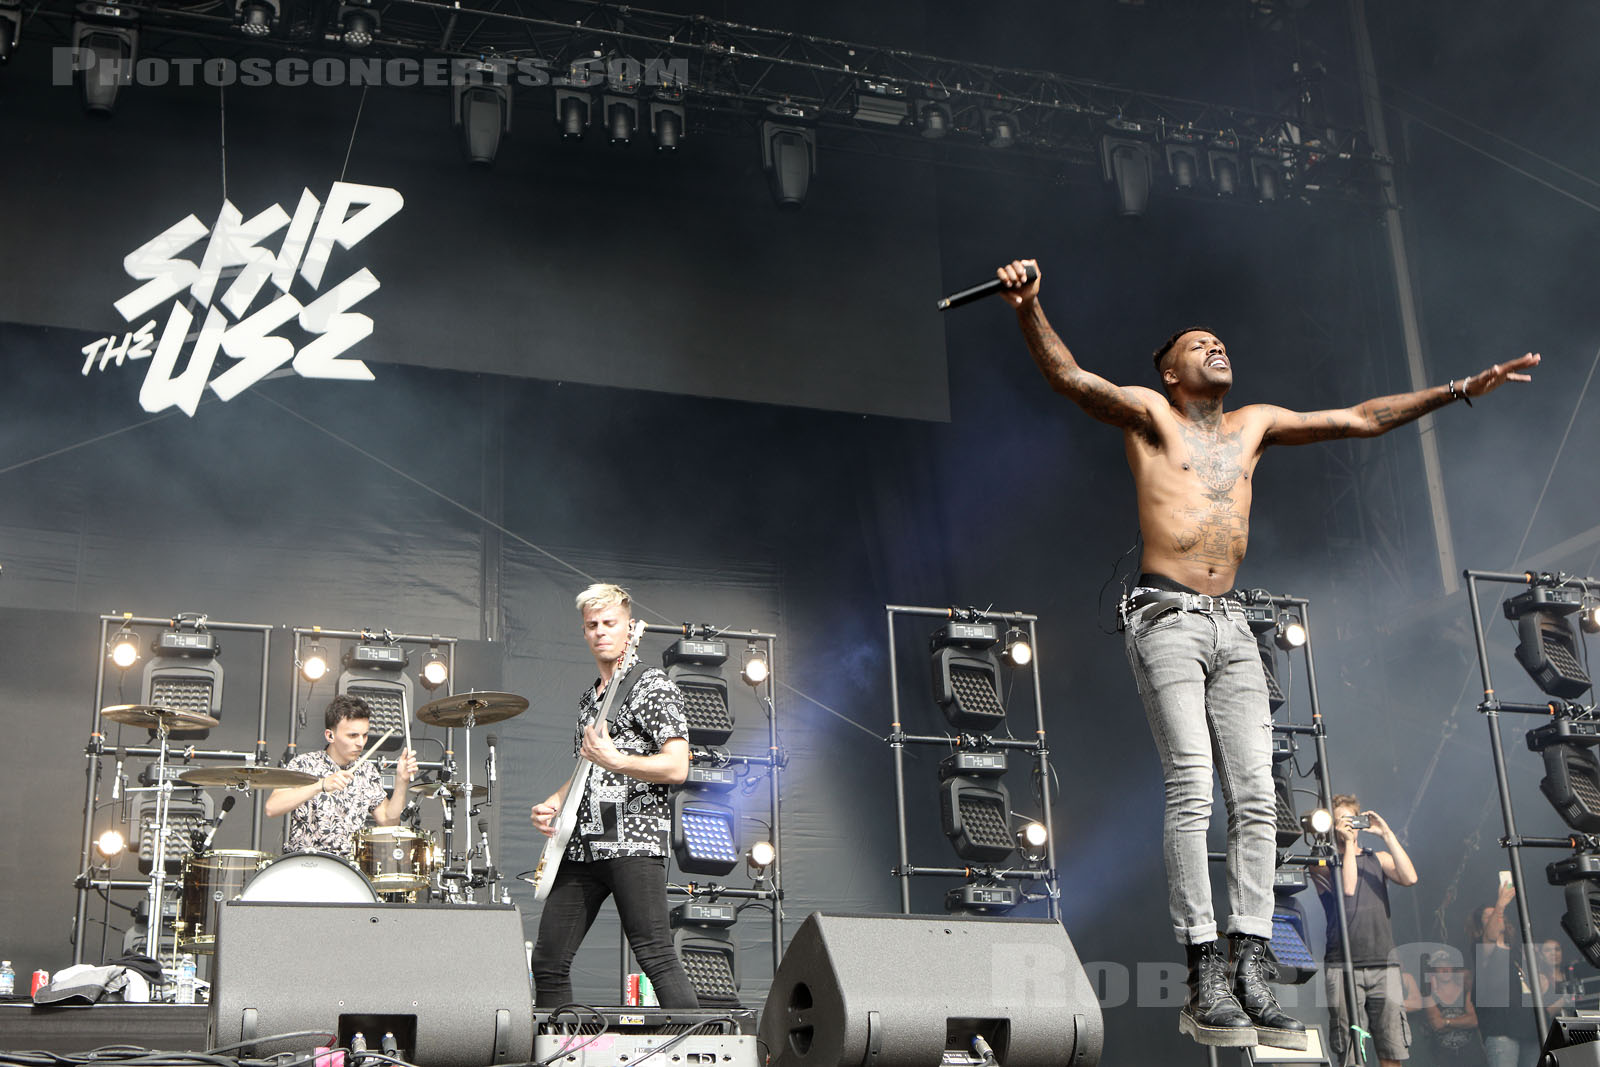 SKIP THE USE - 2019-07-20 - PARIS - Hippodrome de Longchamp - Alternative Stage